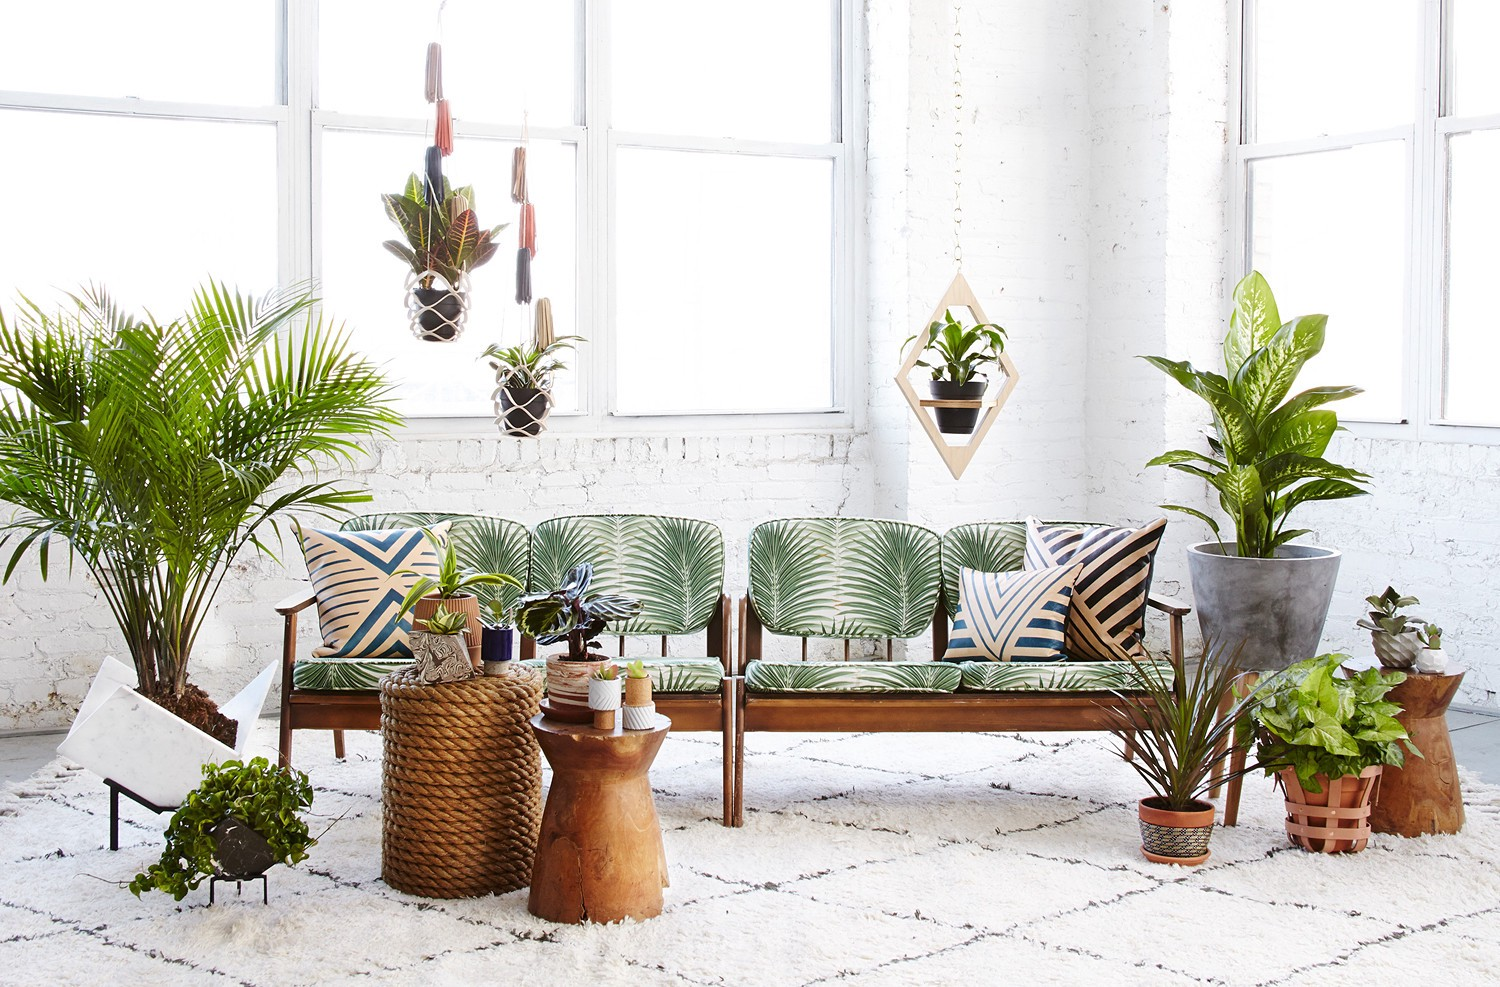 How To Use Plants In The Interior By Anna Samygina Basics Of Interior Design Medium